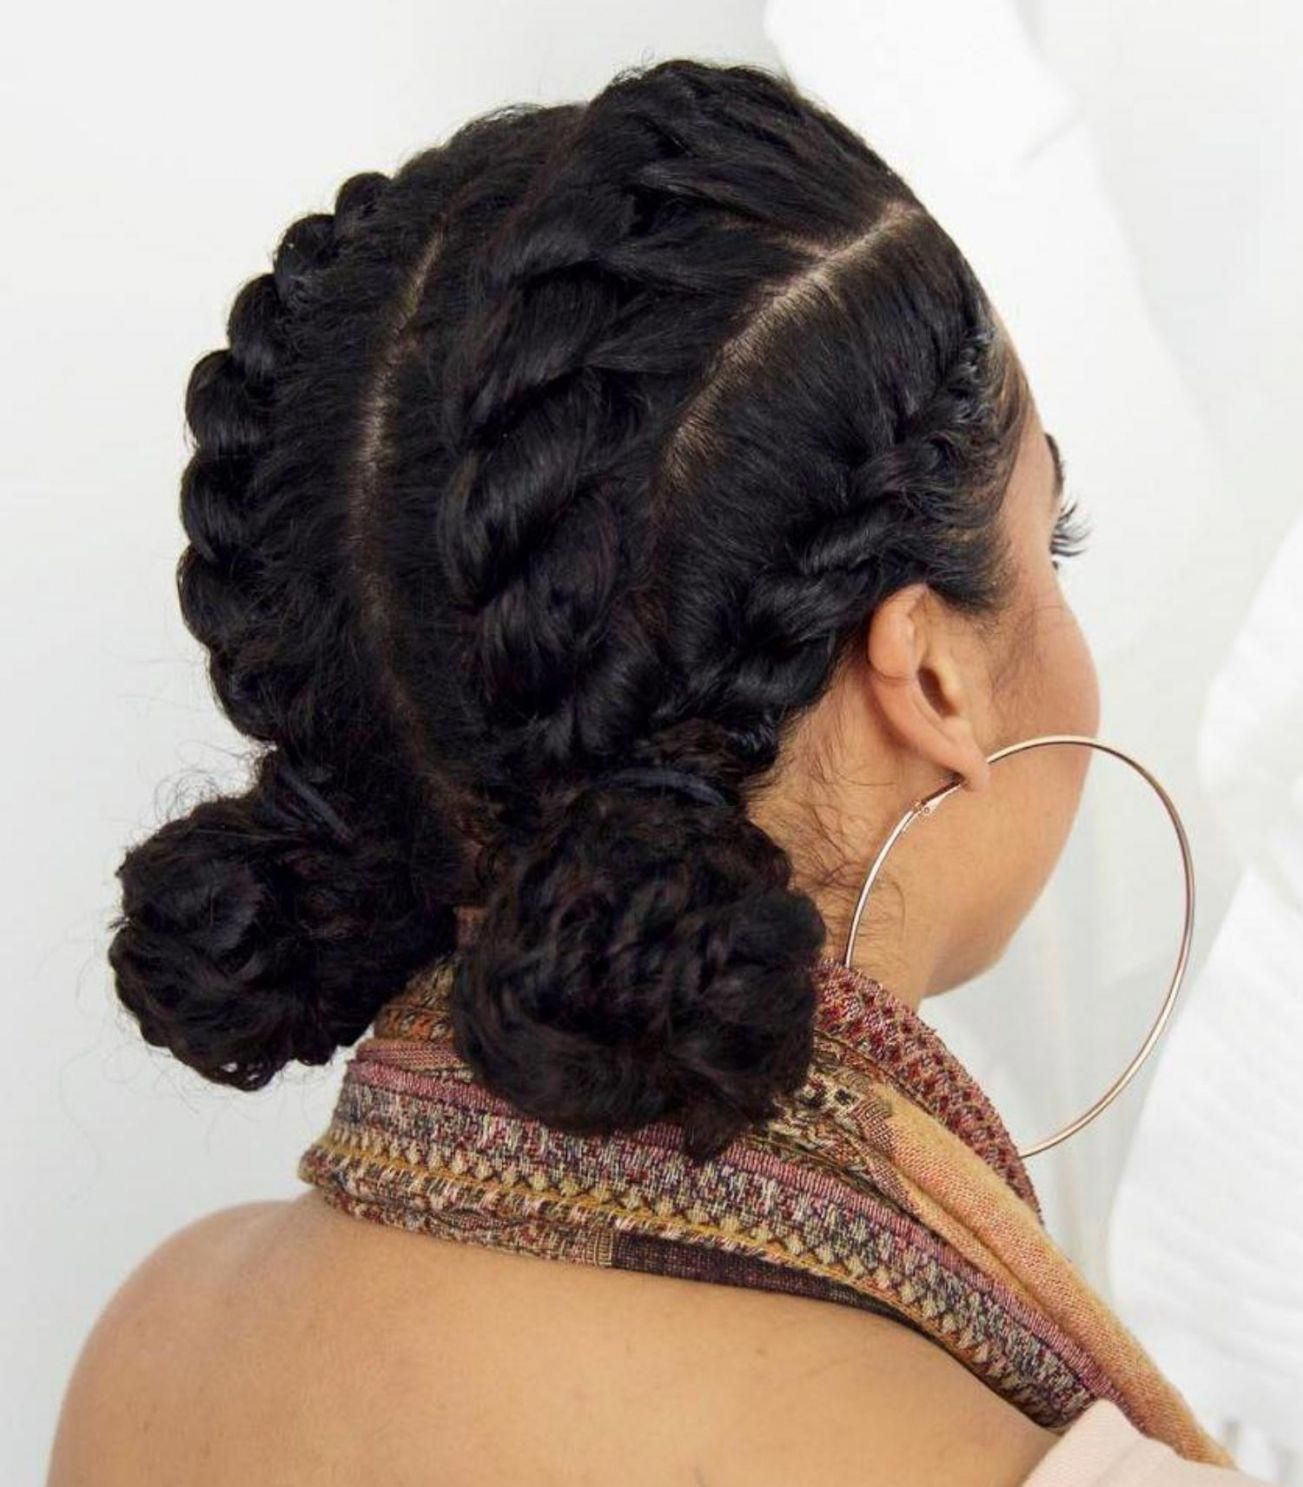 Two Low Buns Protective Updo Braidshairstyles Protective Hairstyles For Natural Hair Protective Hairstyles Natural Hair Transitioning